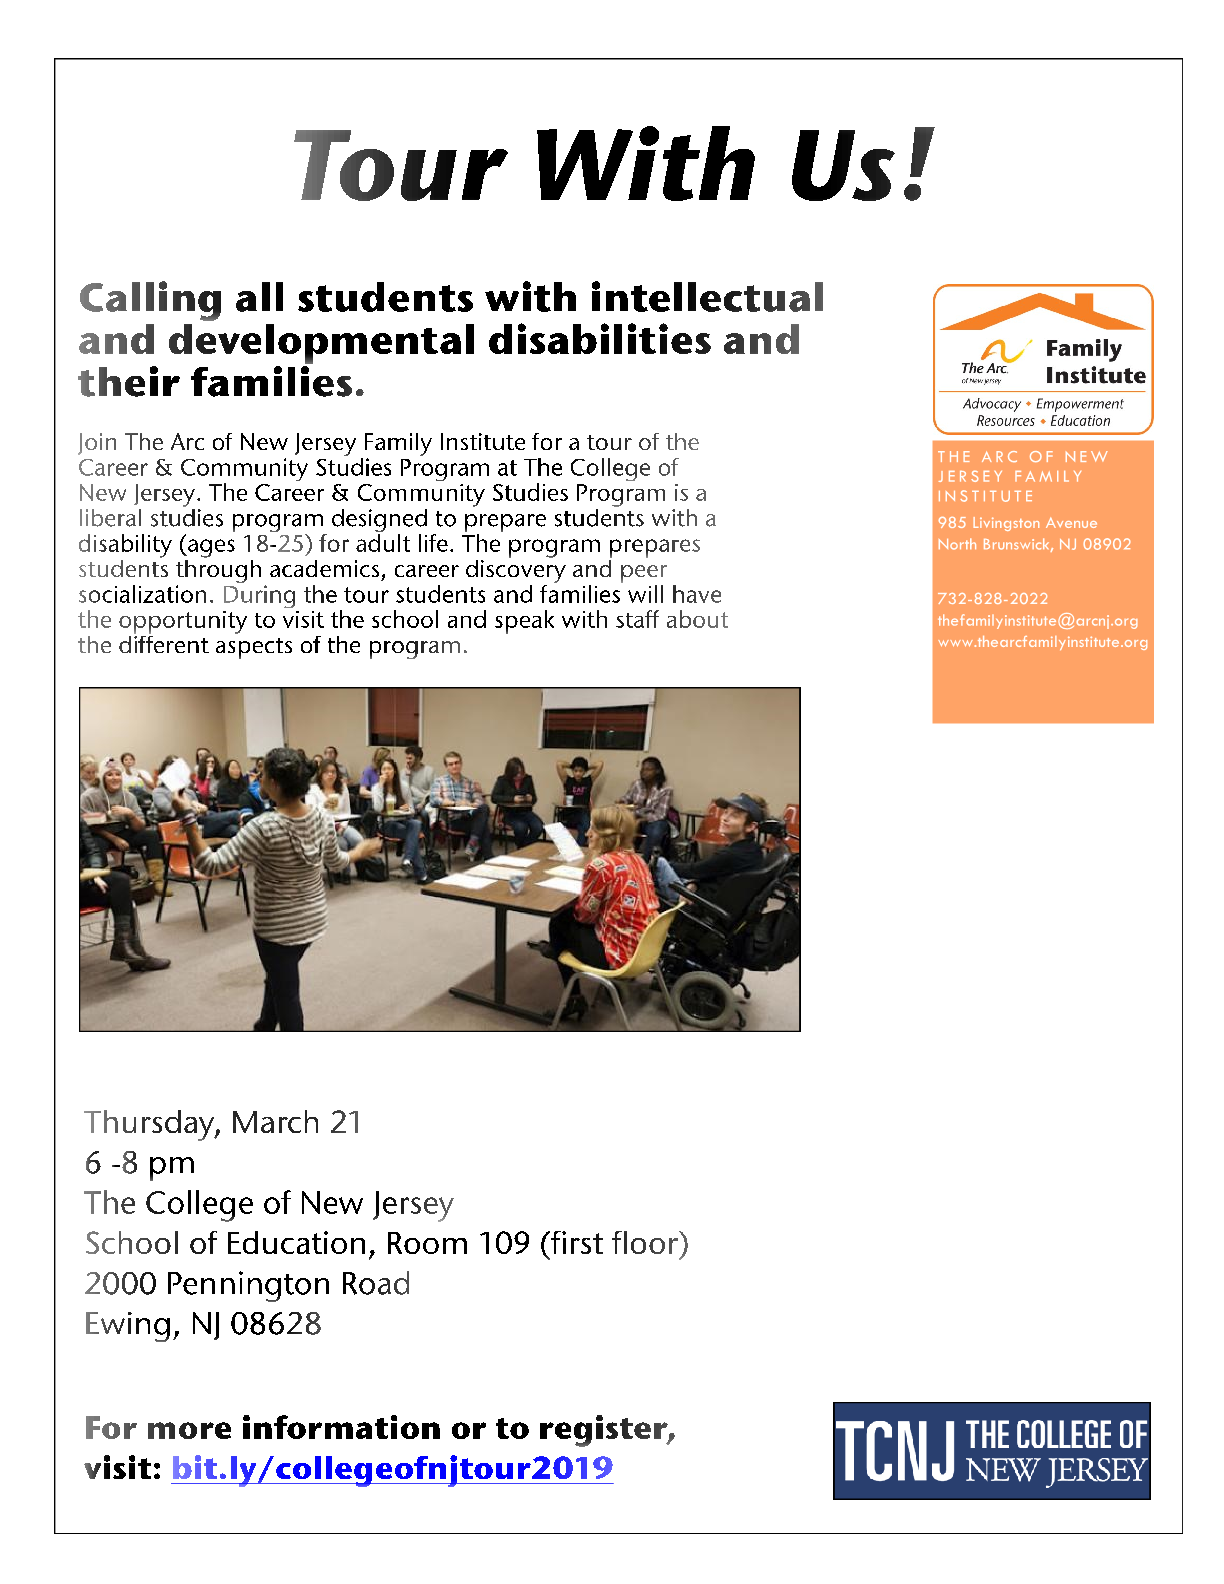 Thursday, March 21 - Career & Community Studies Program Tour - Mercer County